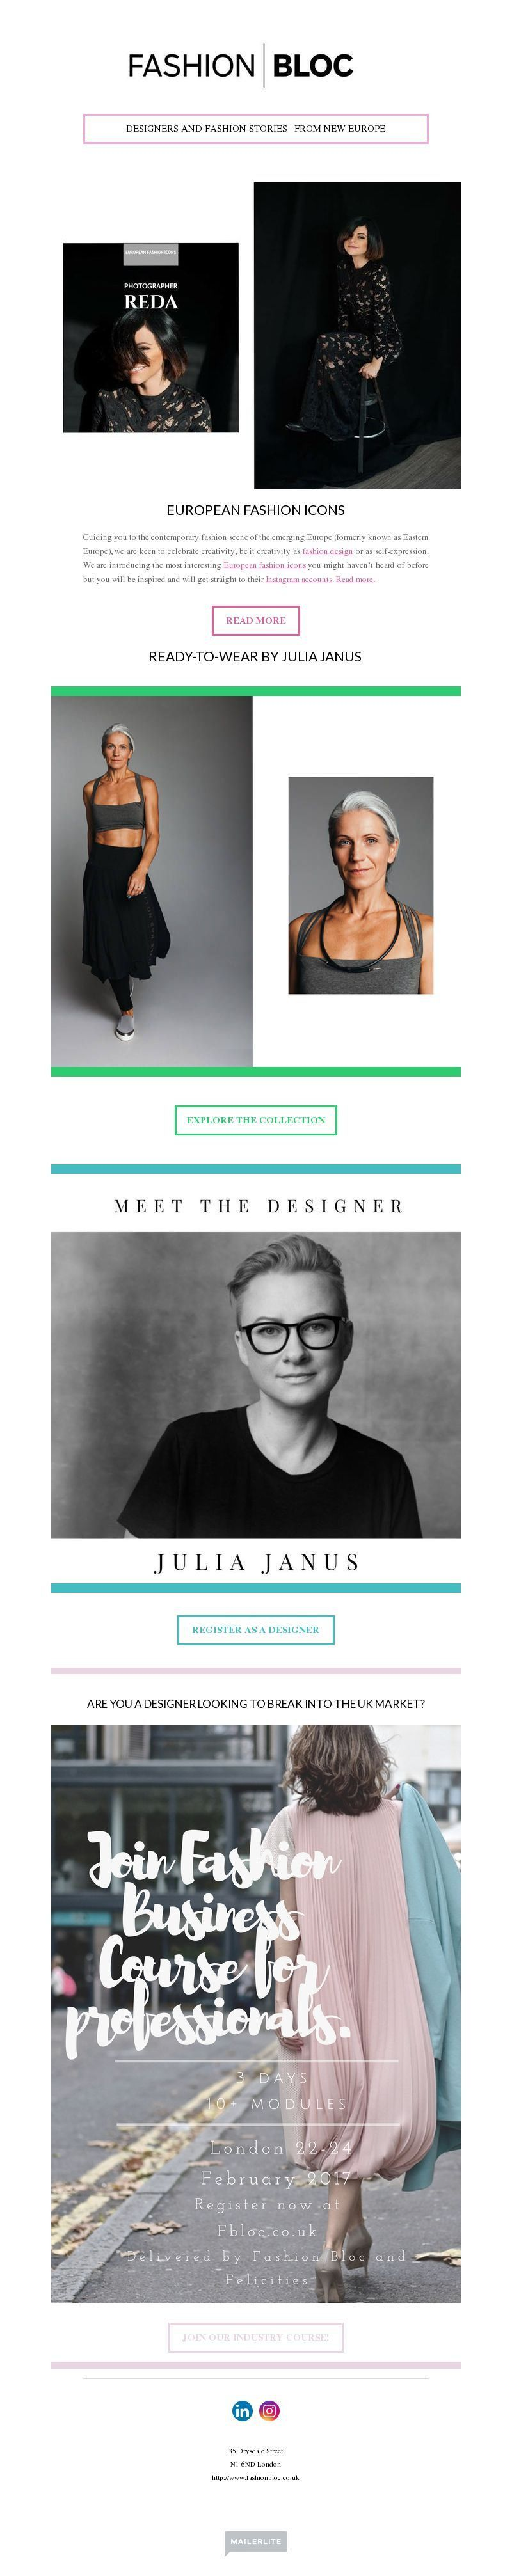 Fashion Newsletter Design Gallery and Examples | MailerLite